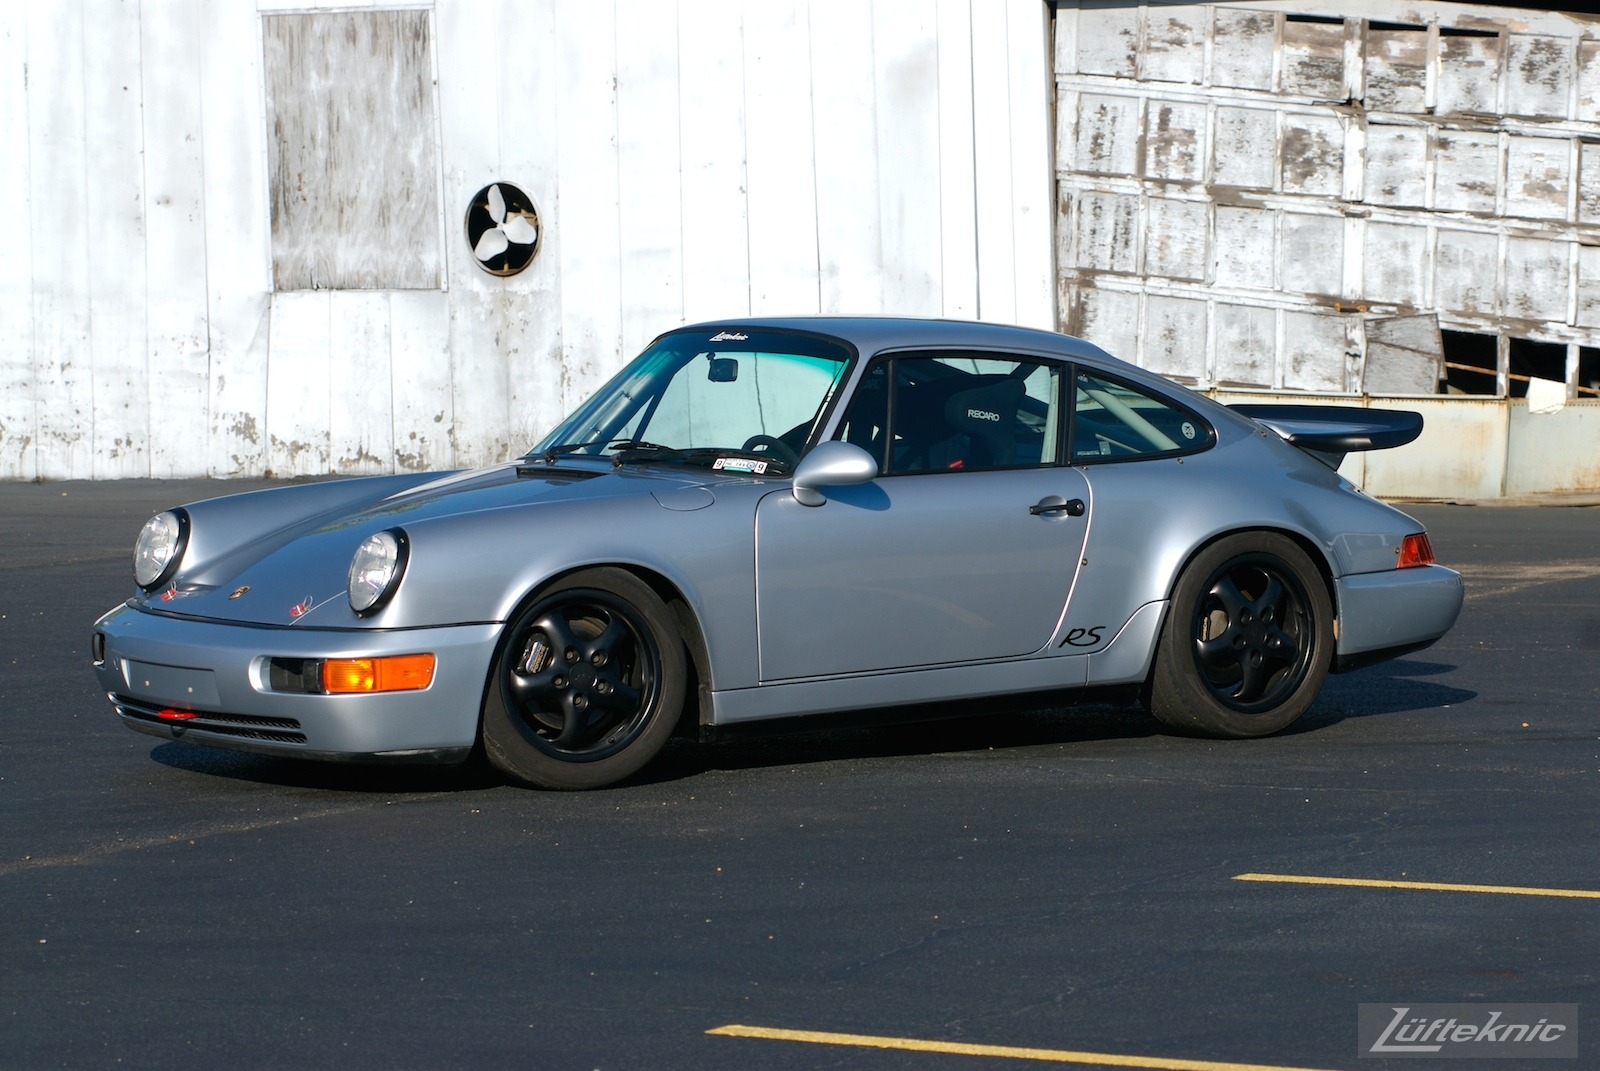 The 964 RS America in a parking lot with a dilapidated garage in the background.